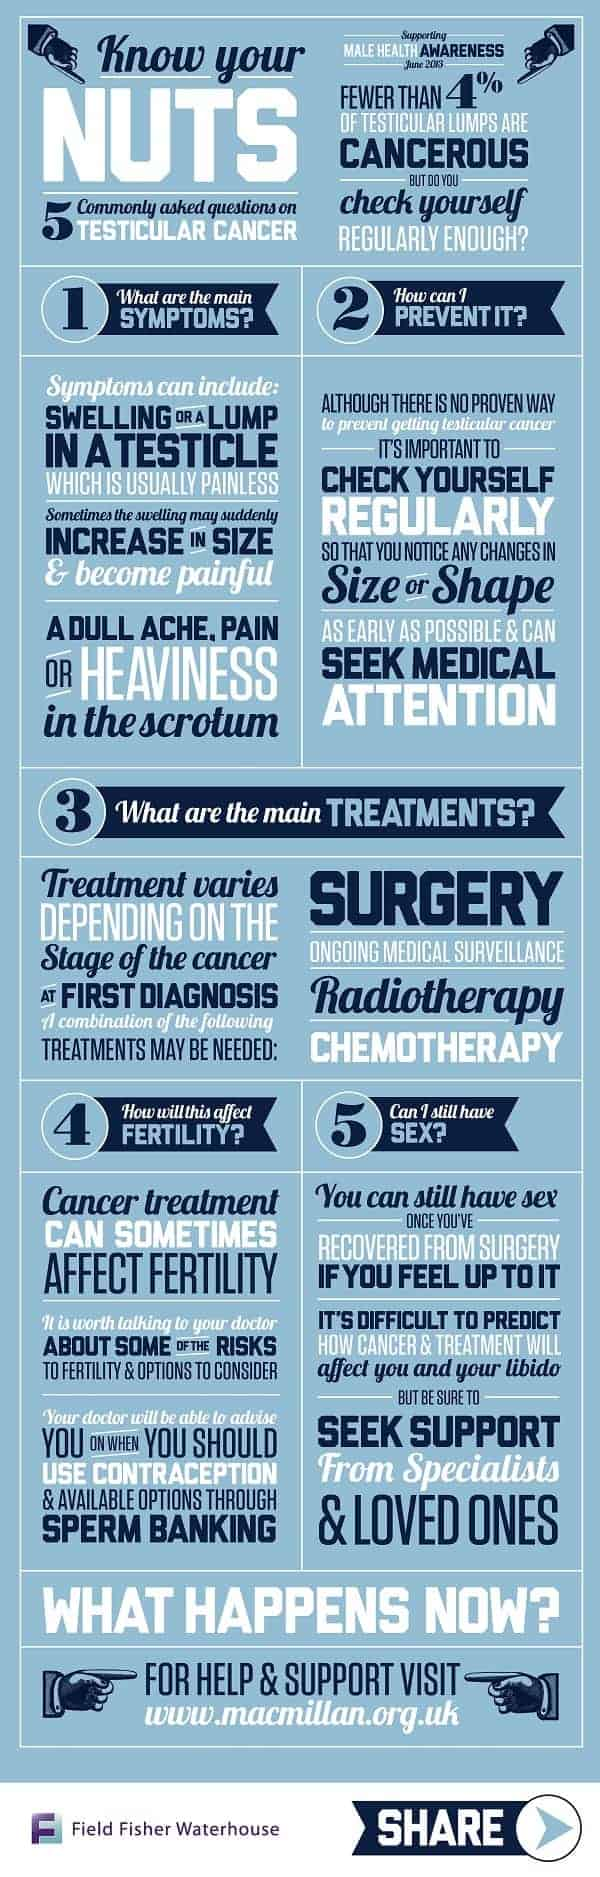 Know Your Nuts: An FAQ on Testicluar Cancer [Infographic]